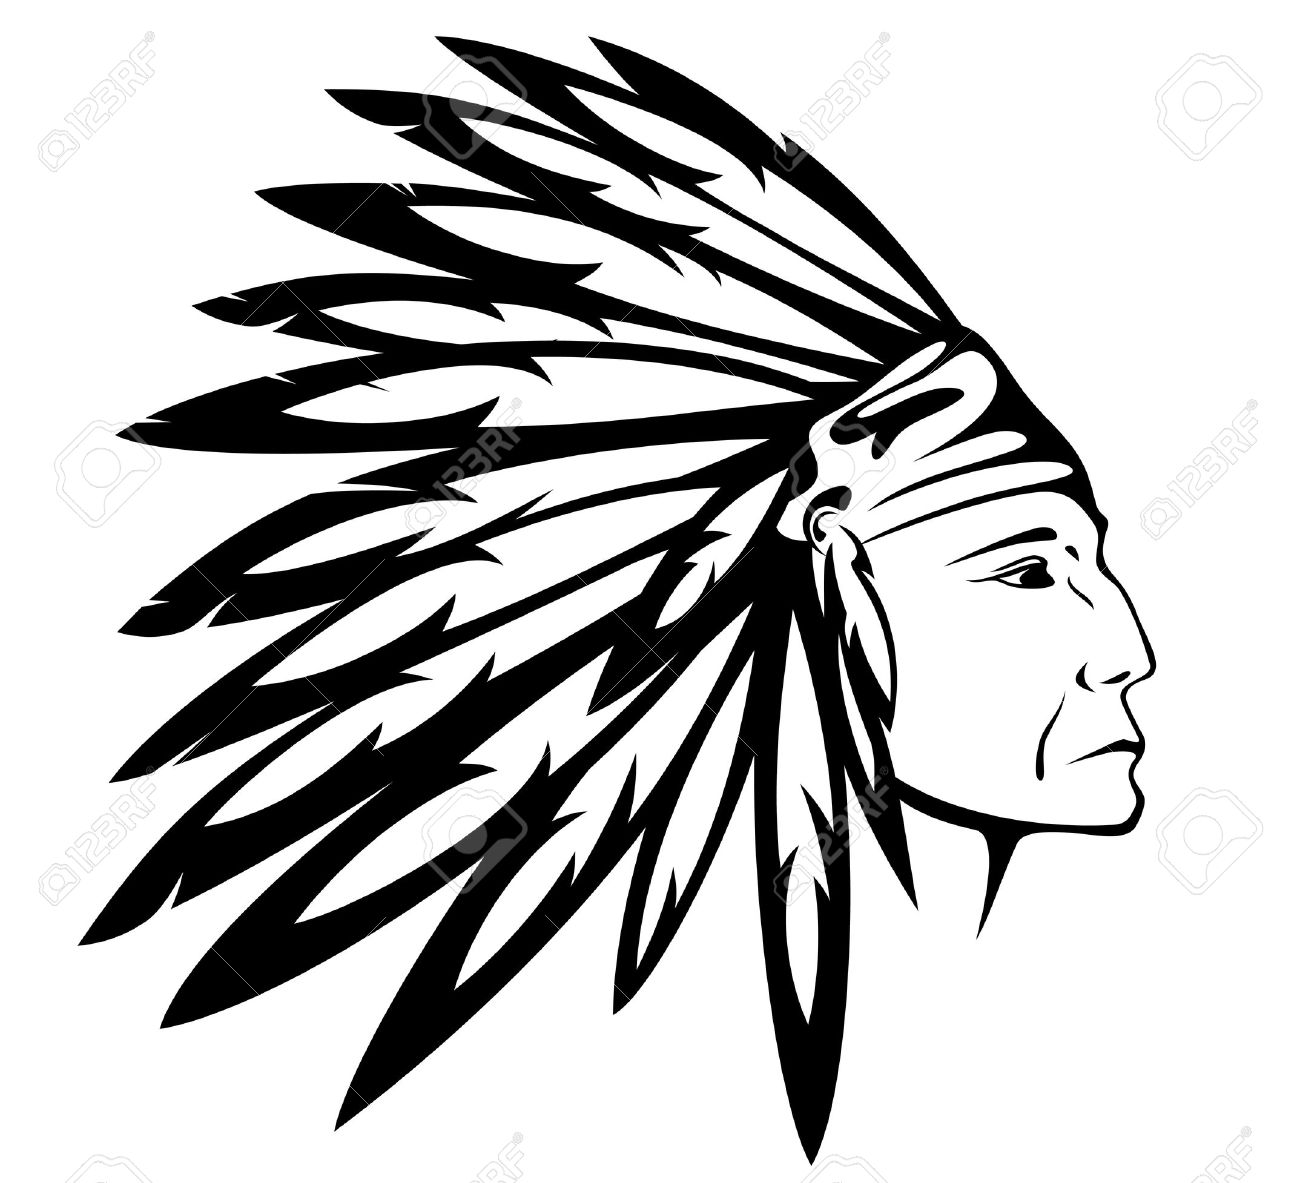 Indian Headdress Clipart Black And White.